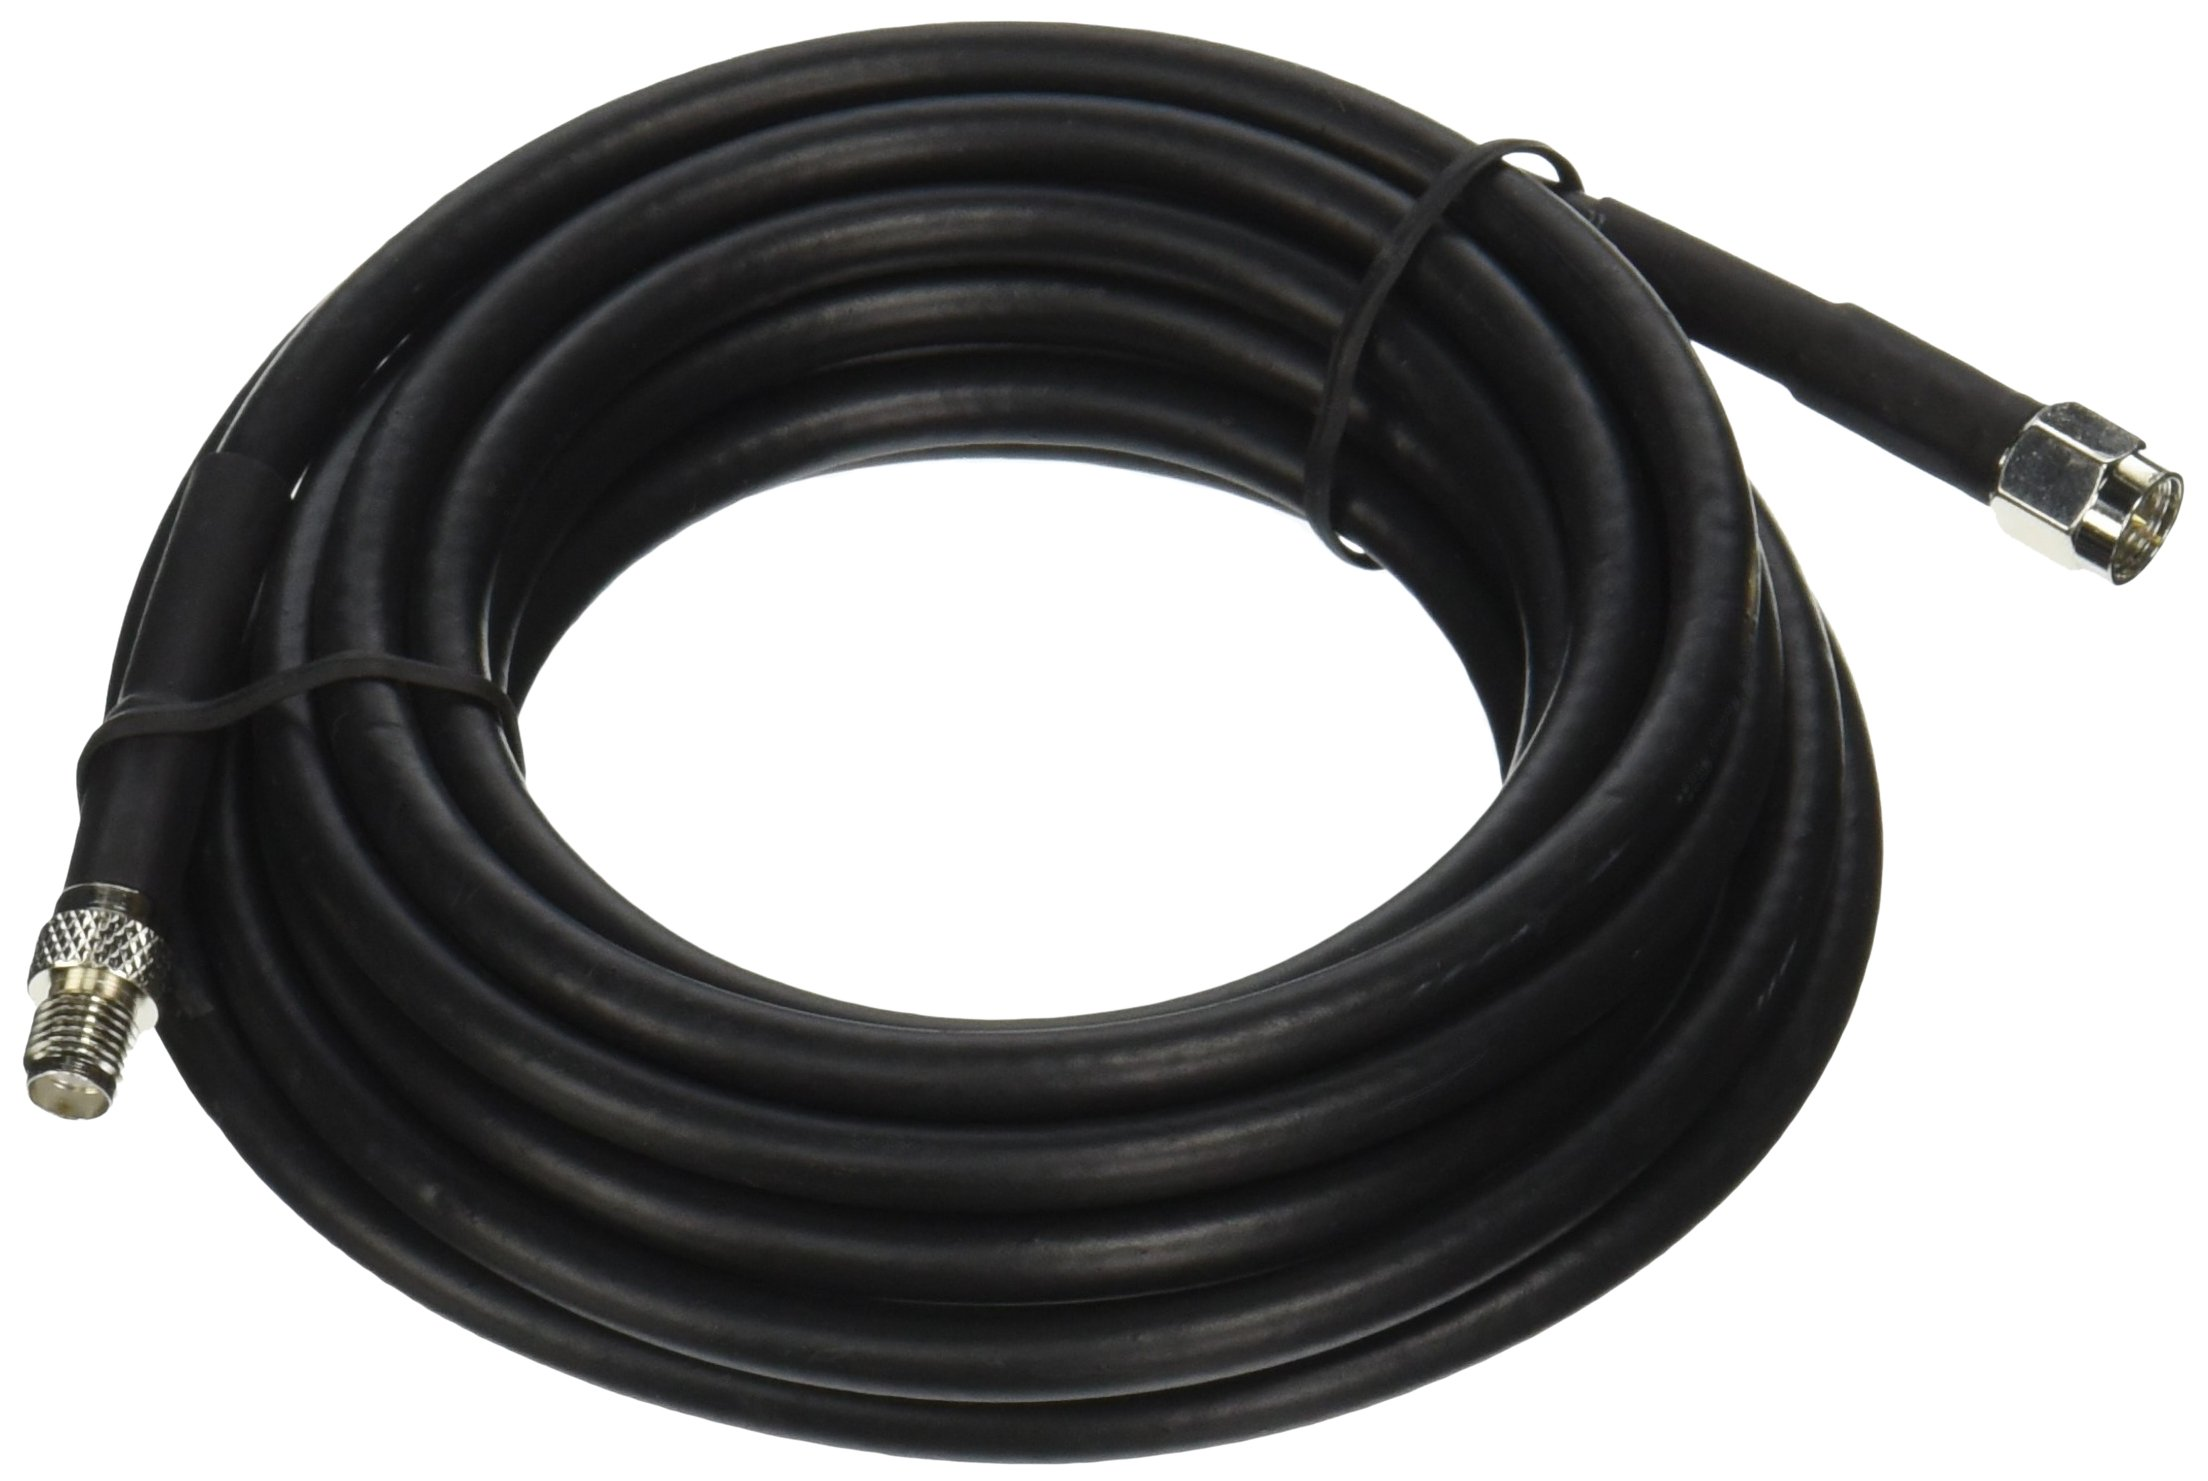 Wilson Electronics 10 ft. Black RG58 Low Loss Coax Cable (SMA Male to SMA Female)